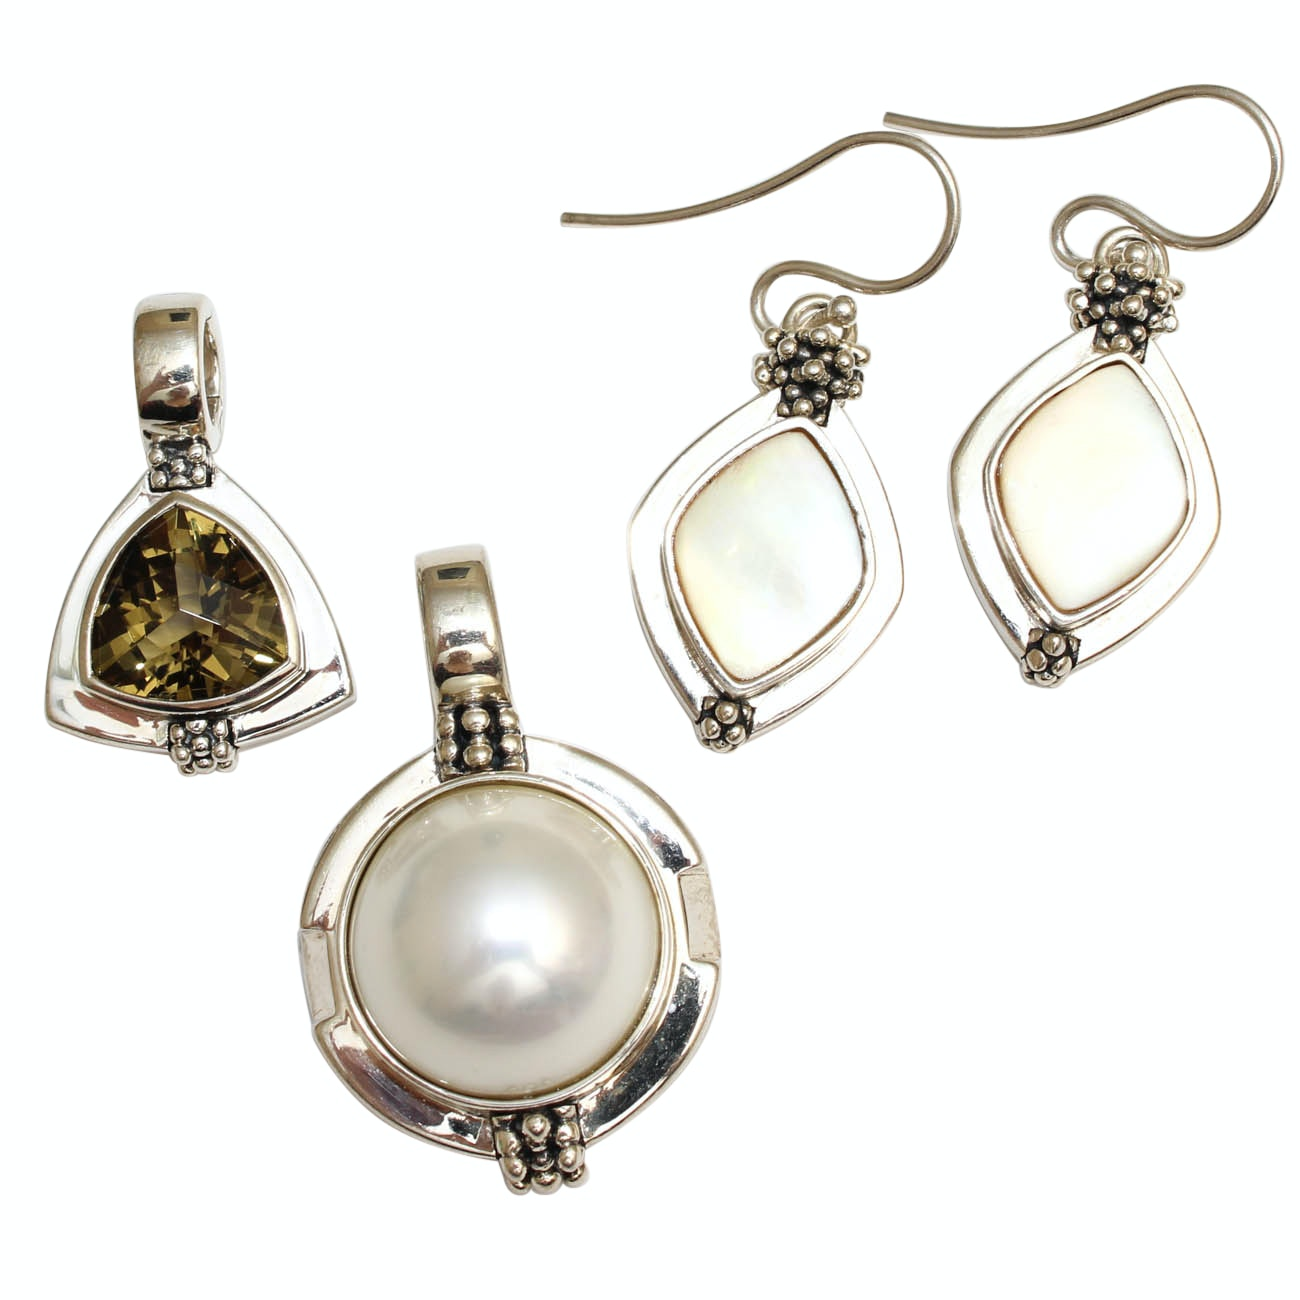 Michael Dawkins Sterling Silver Jewelry with Gemstones